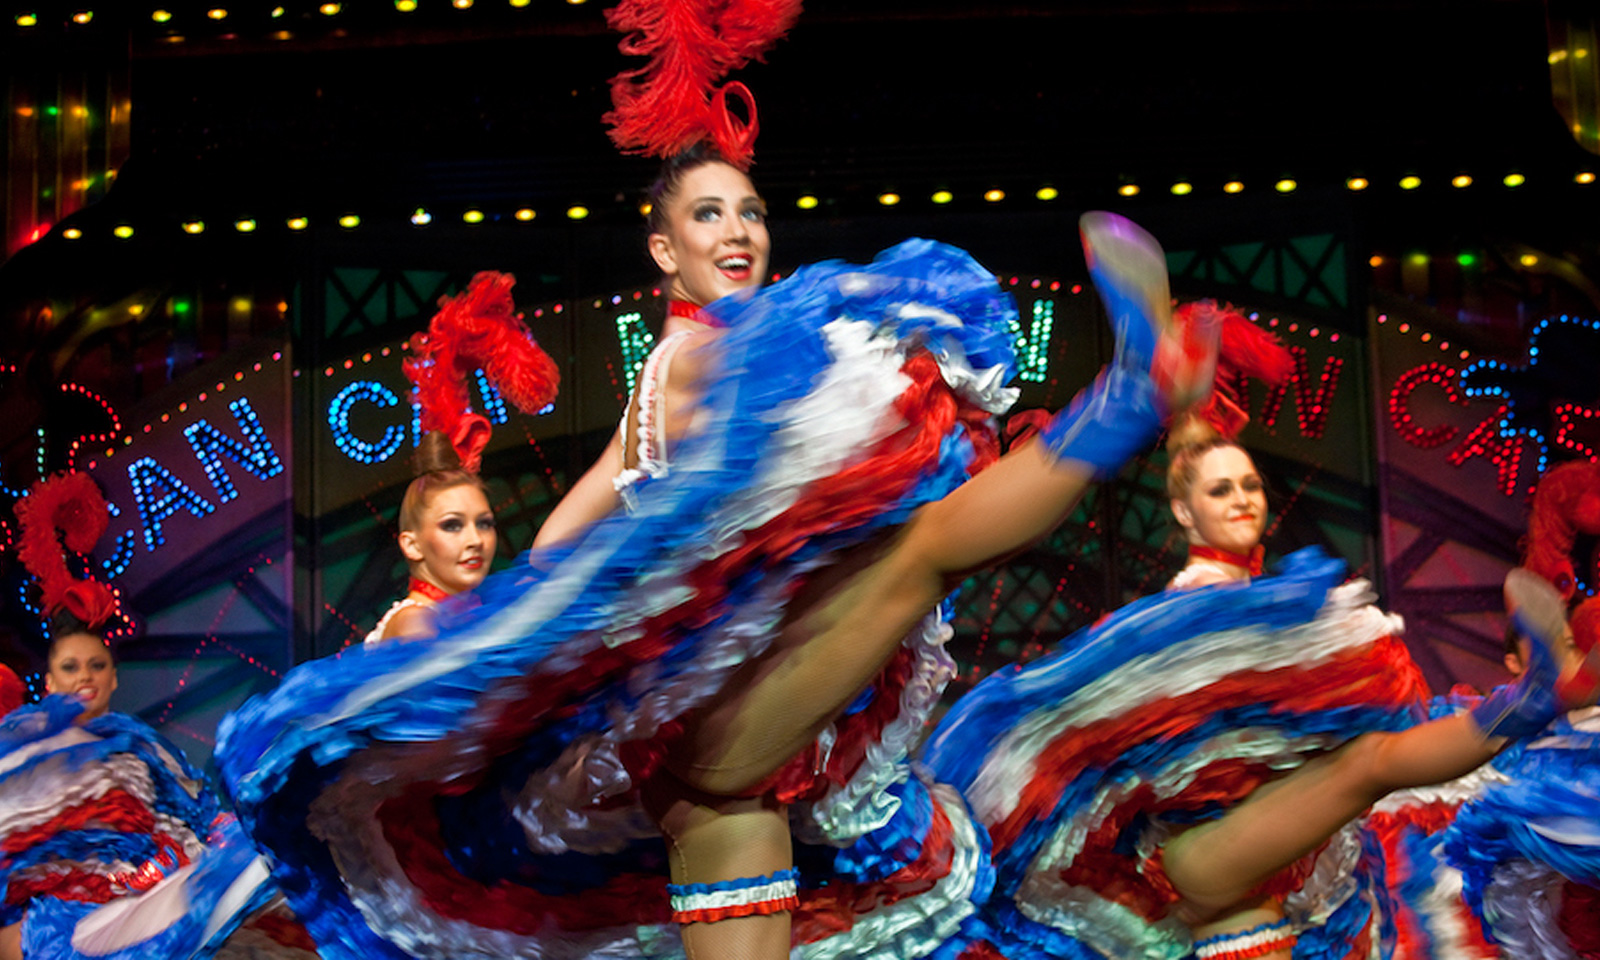 The fascinating Moulin Rouge dancers take center stage at the 2018 Ryder Cup in France.